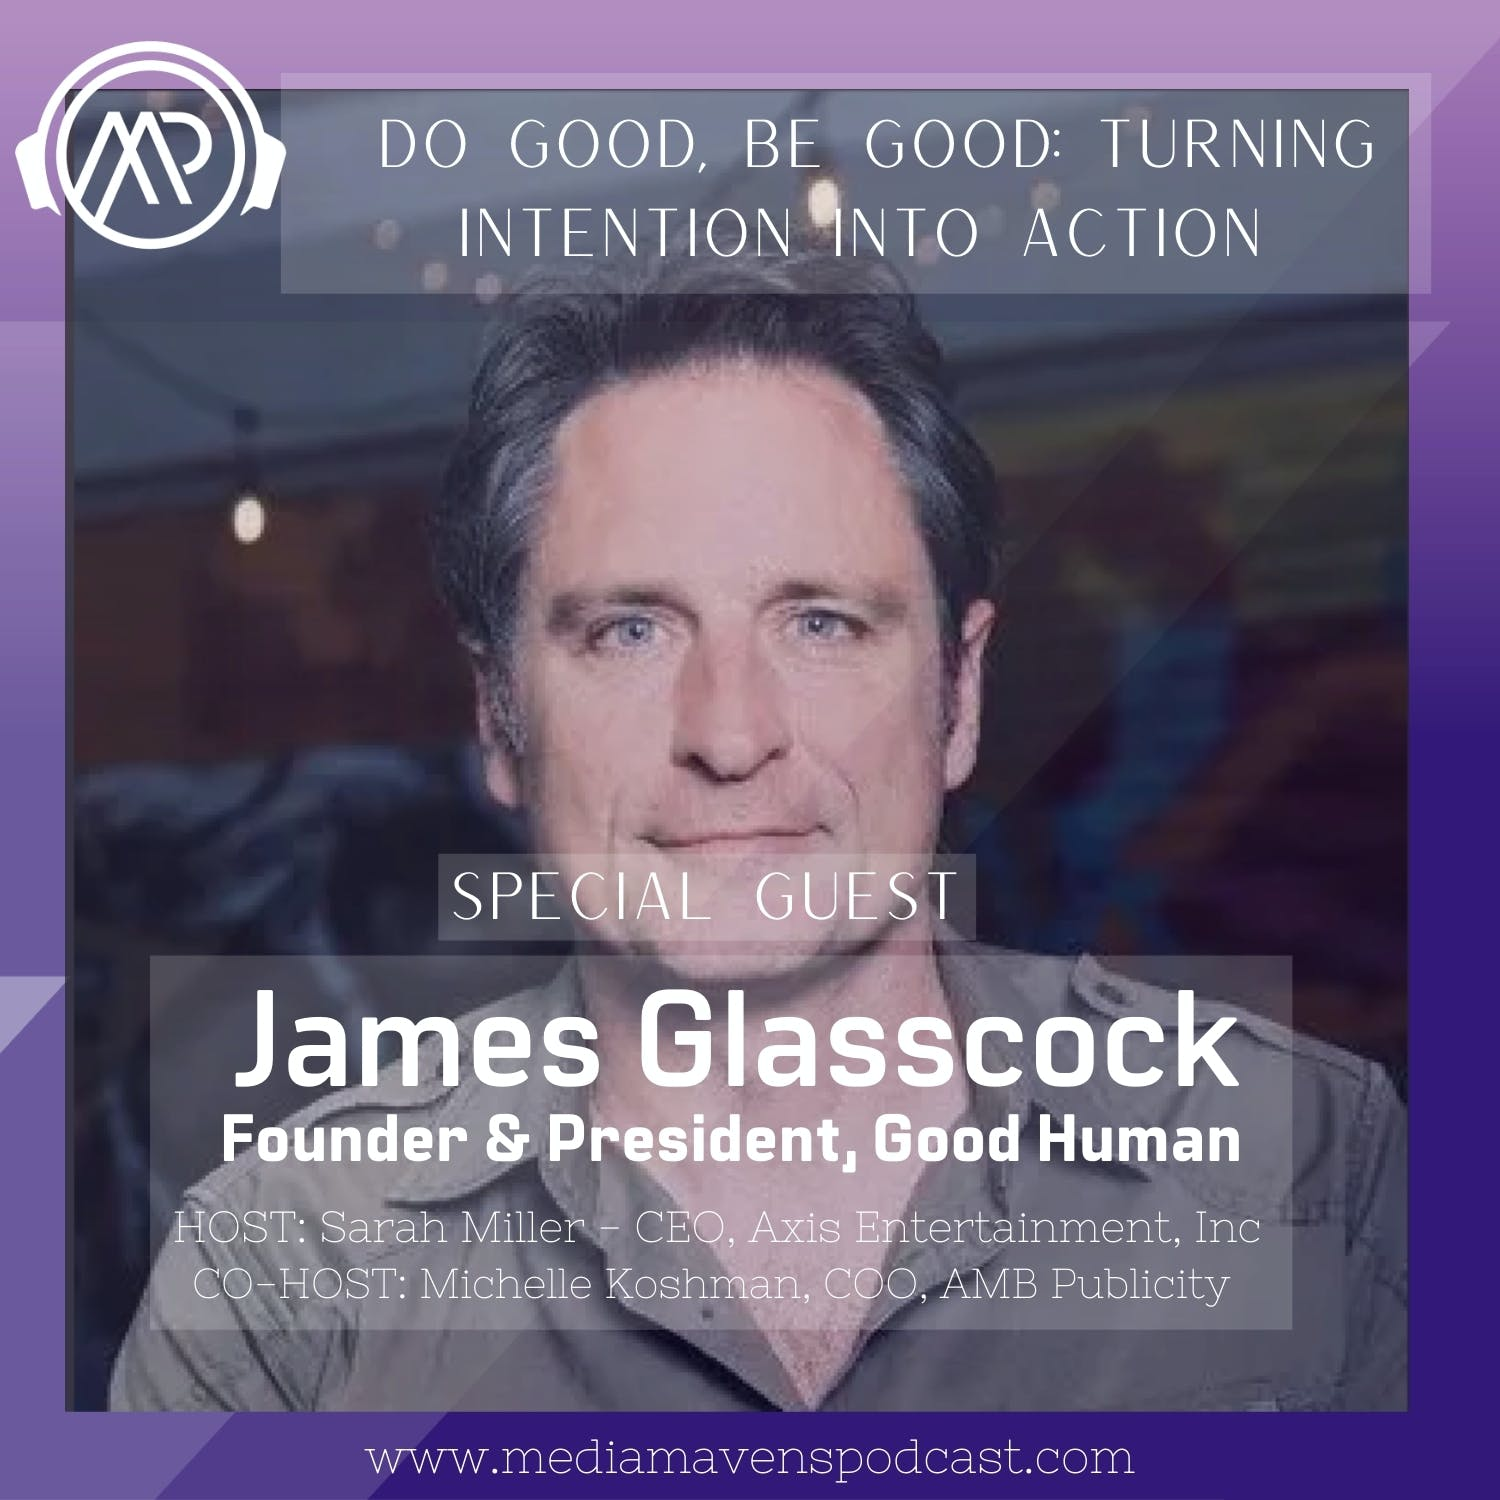 Do Good, Be Good: Turning Intention into Action